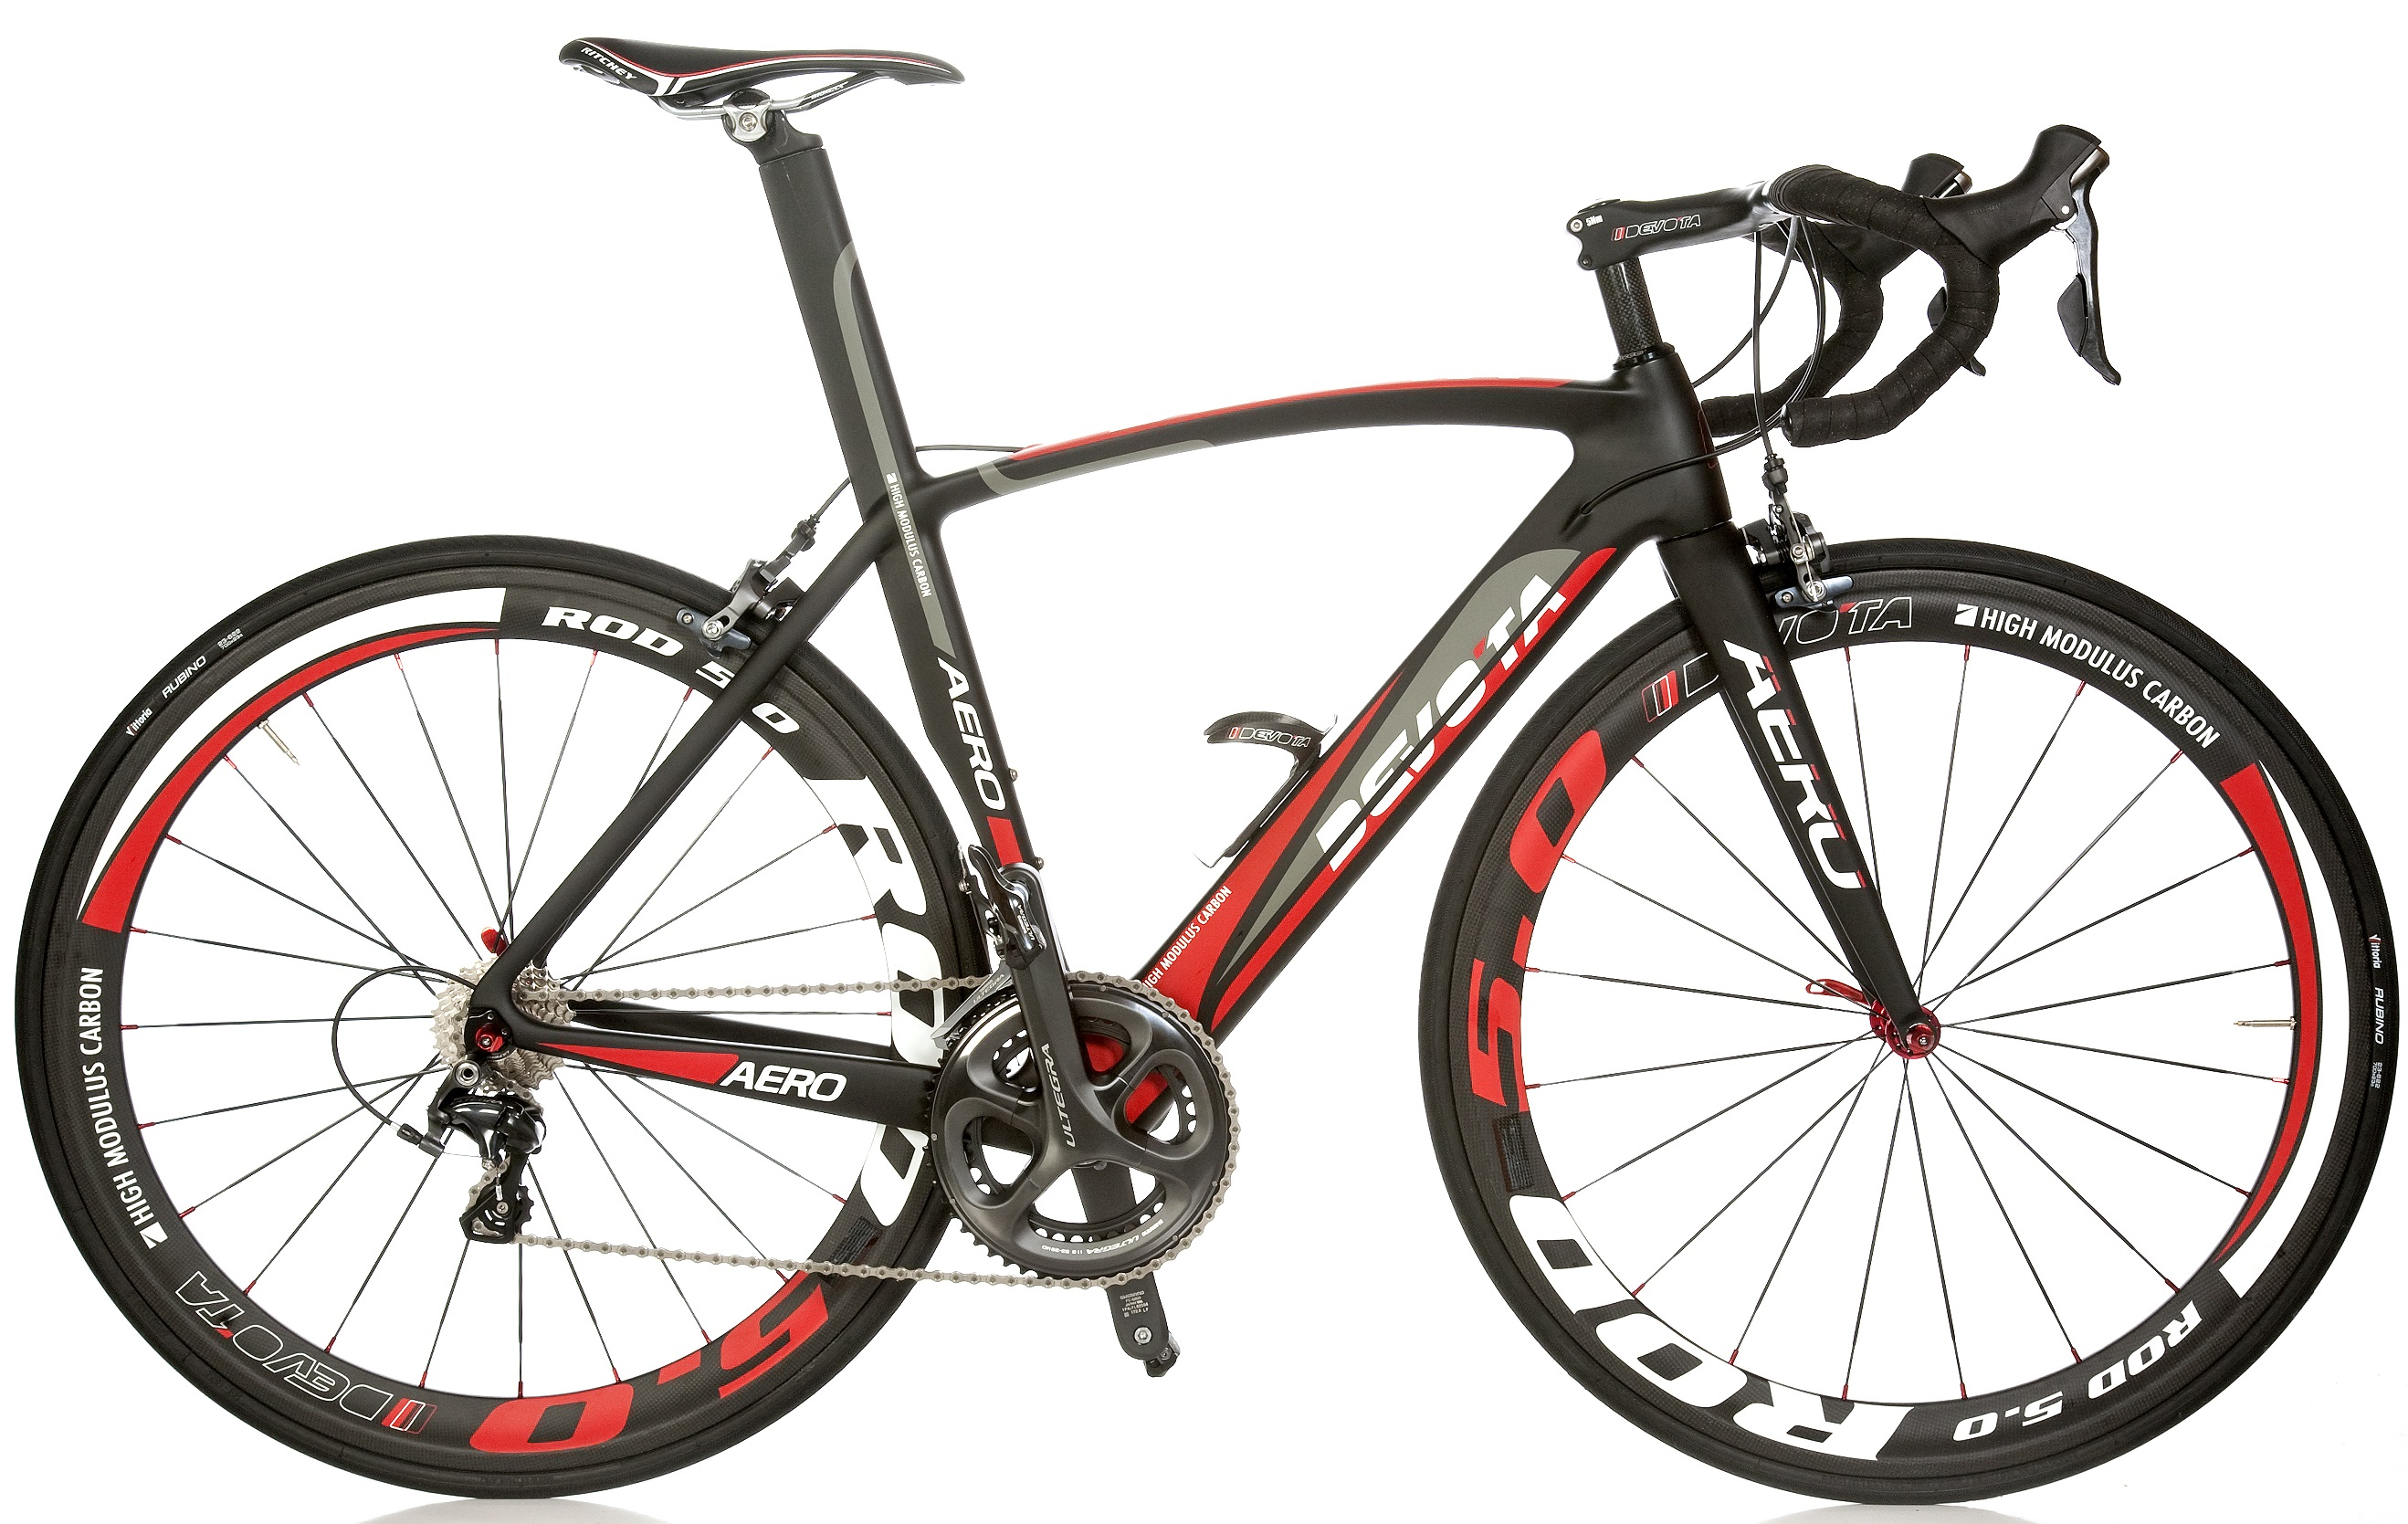 Devota Aero 2014 ultegra black red whiteneuroticarnutzDevota Aero 2014 ultegra black red white2015 Vektor Proto black red ultegra